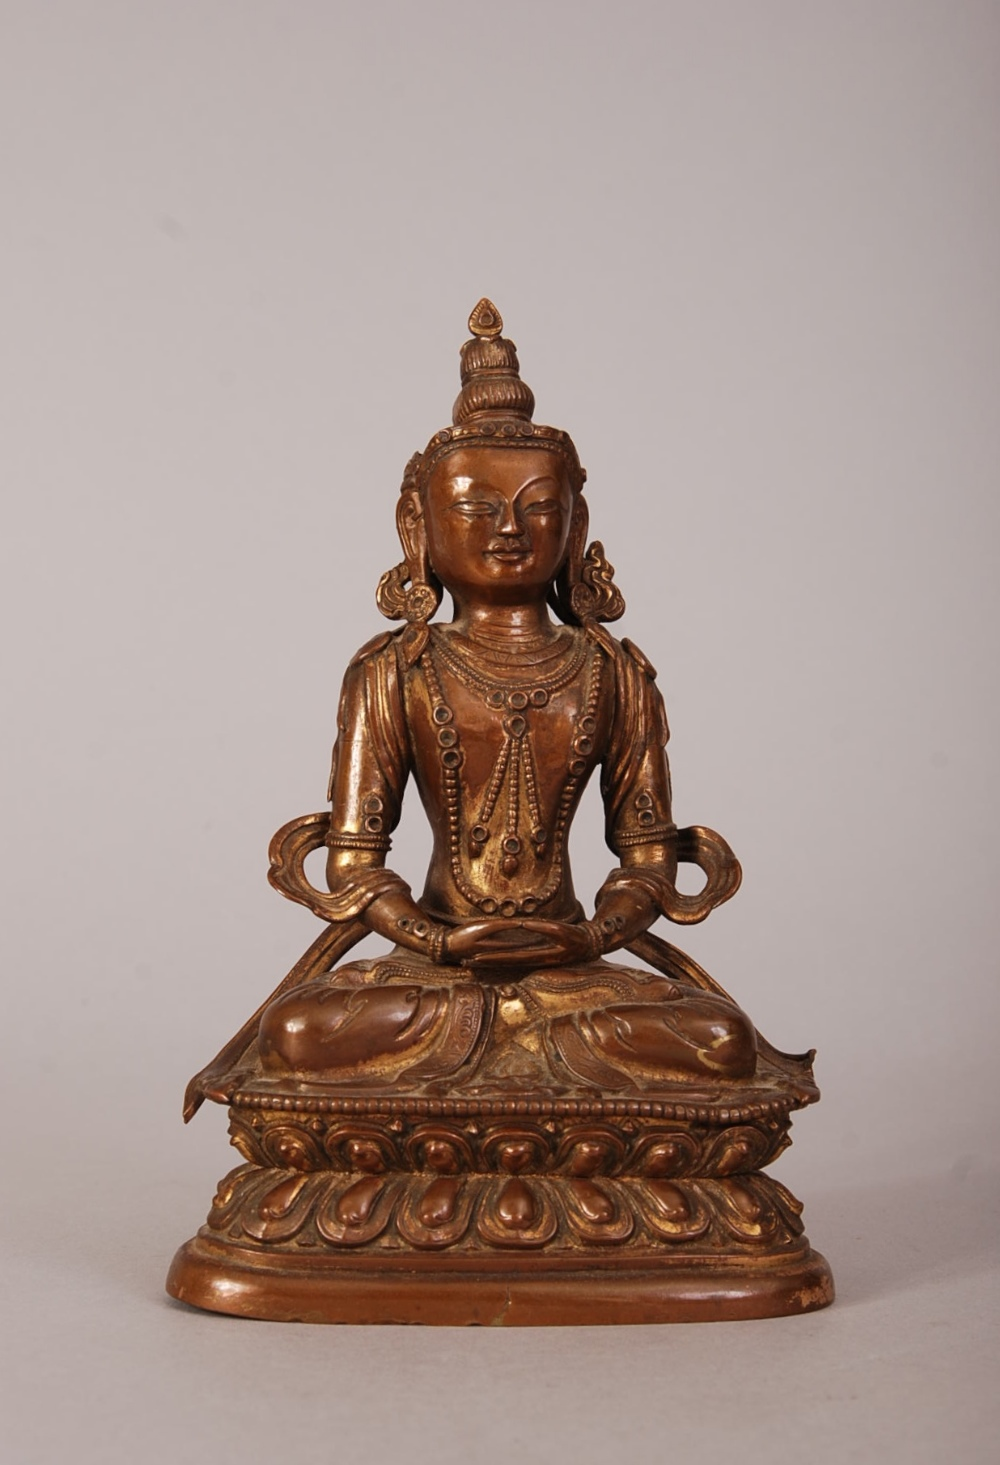 Lot 56 - C18th Chinese gilt-bronze figure of Buddhist, seated in dhyanasana on a double-lotus base with the